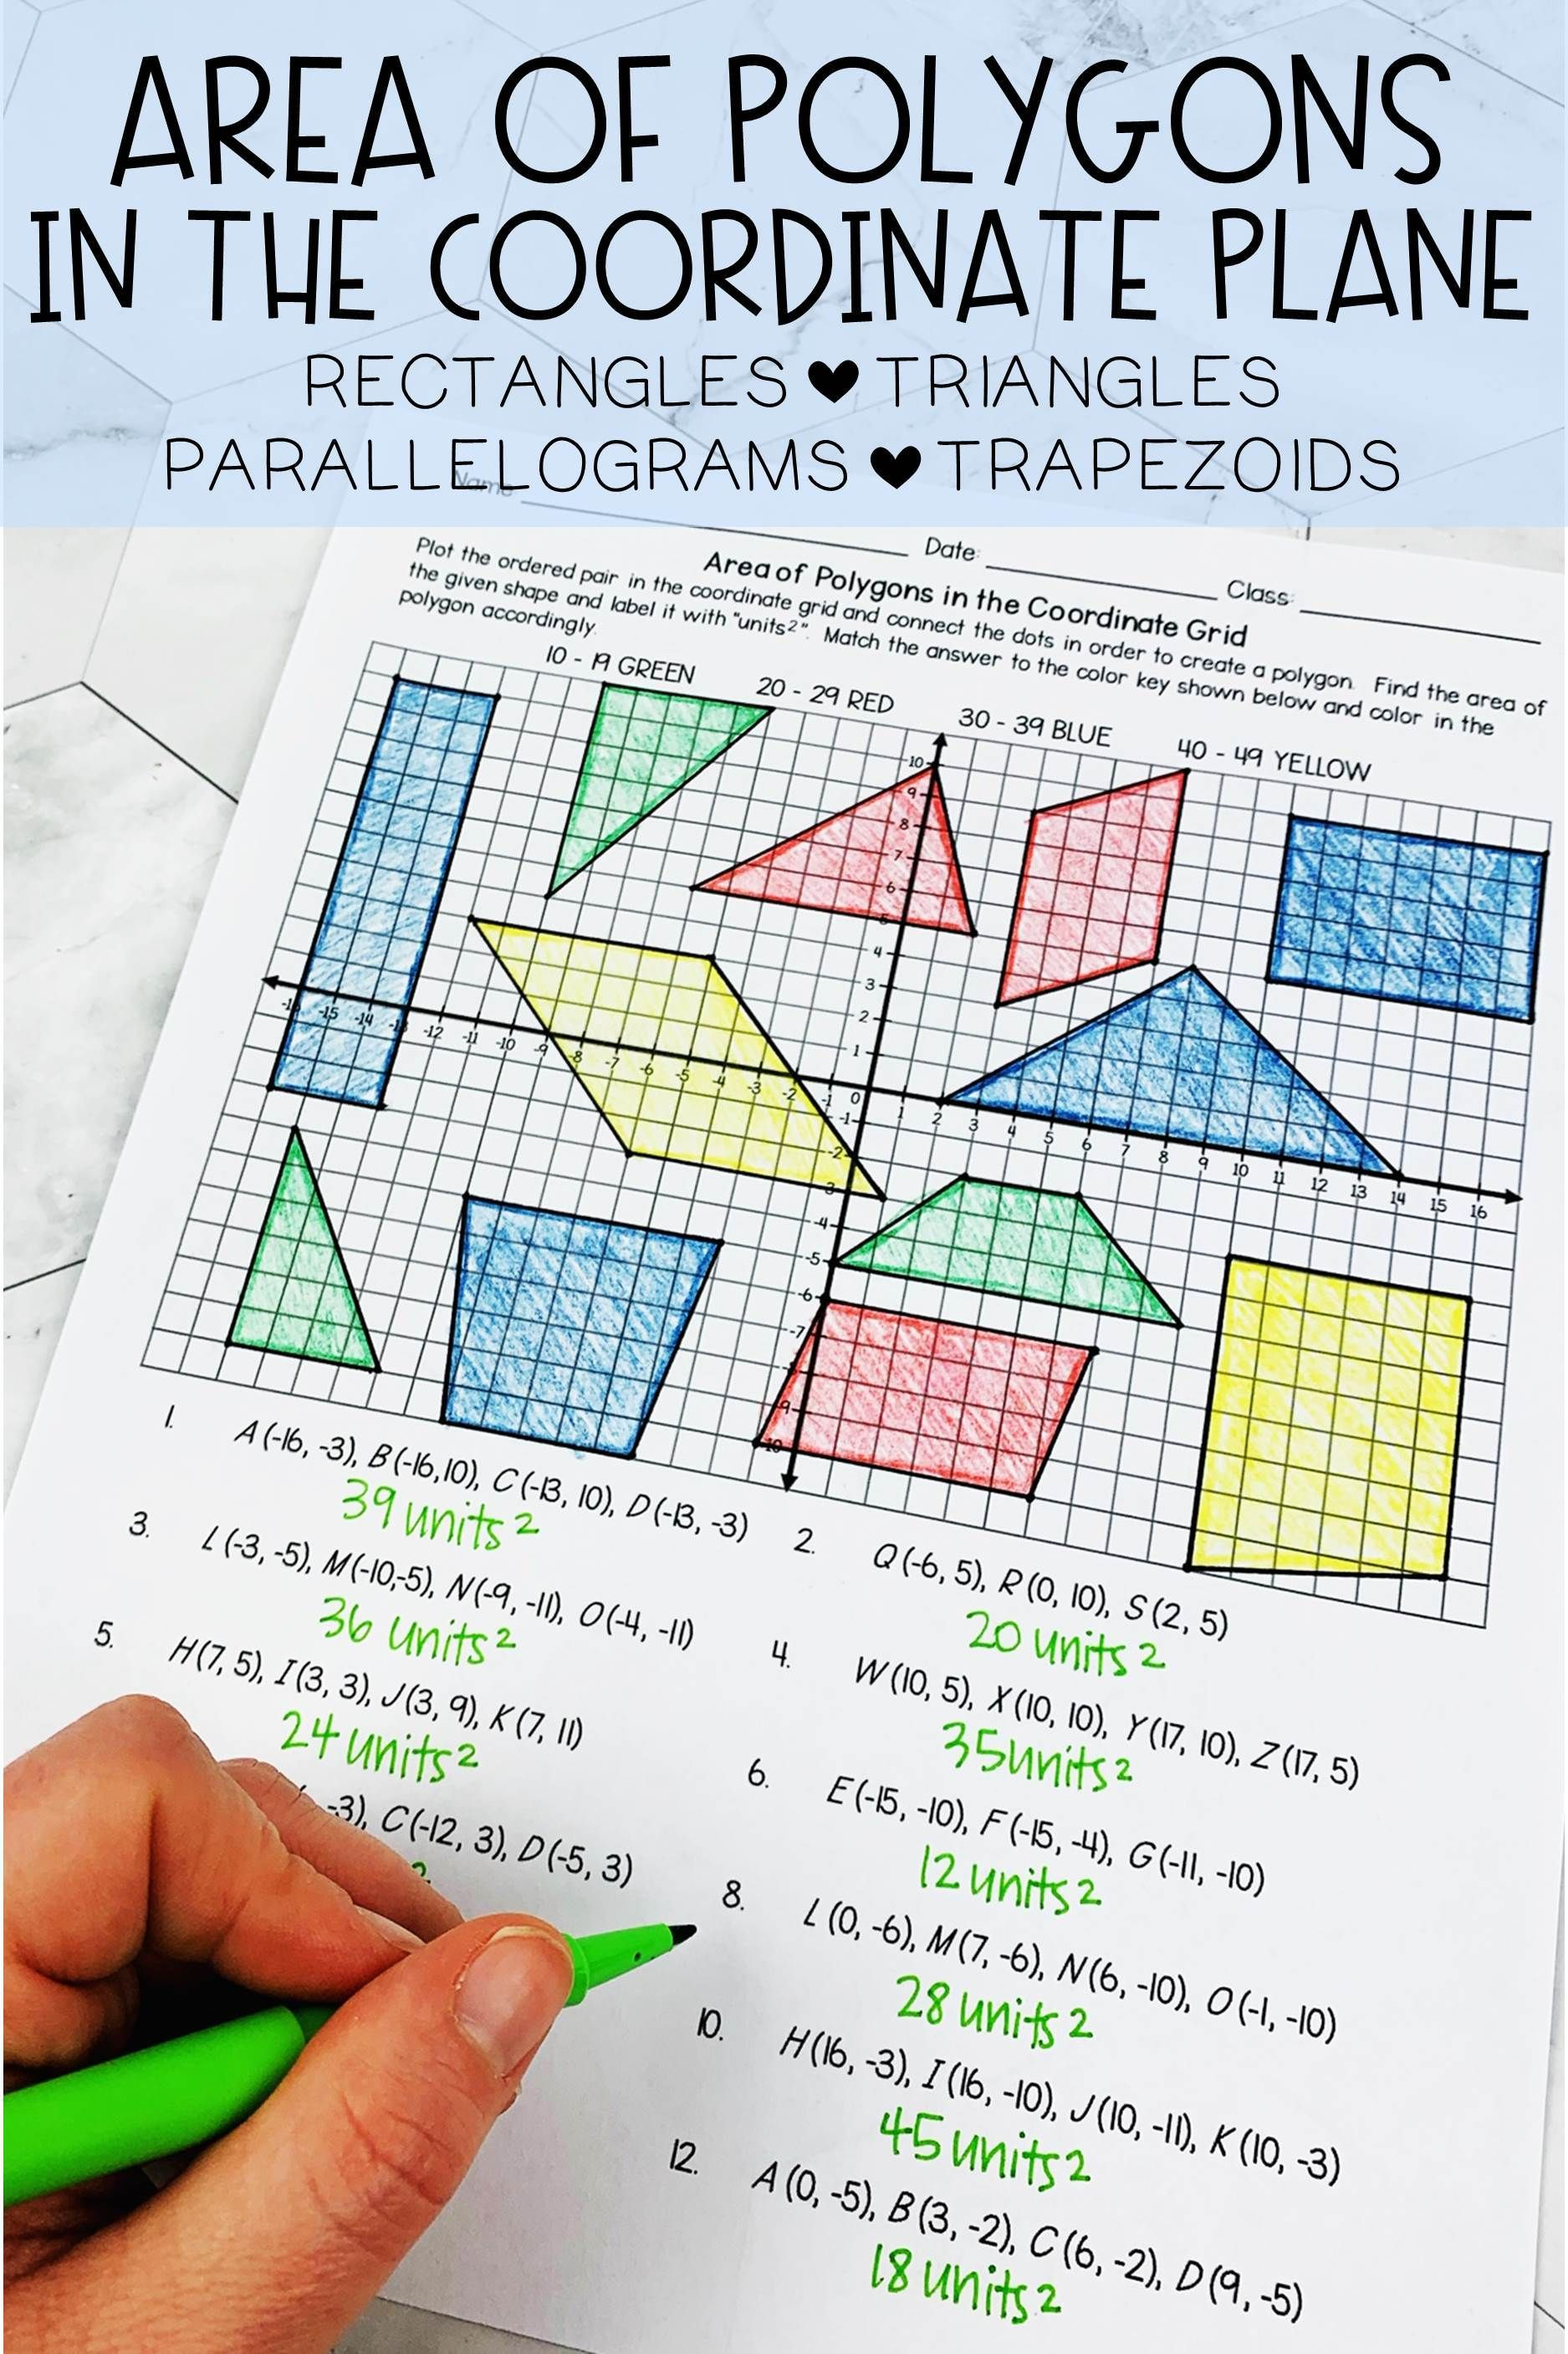 hight resolution of Area of Polygons in the Coordinate Plane Coloring Activity   Coordinate  plane